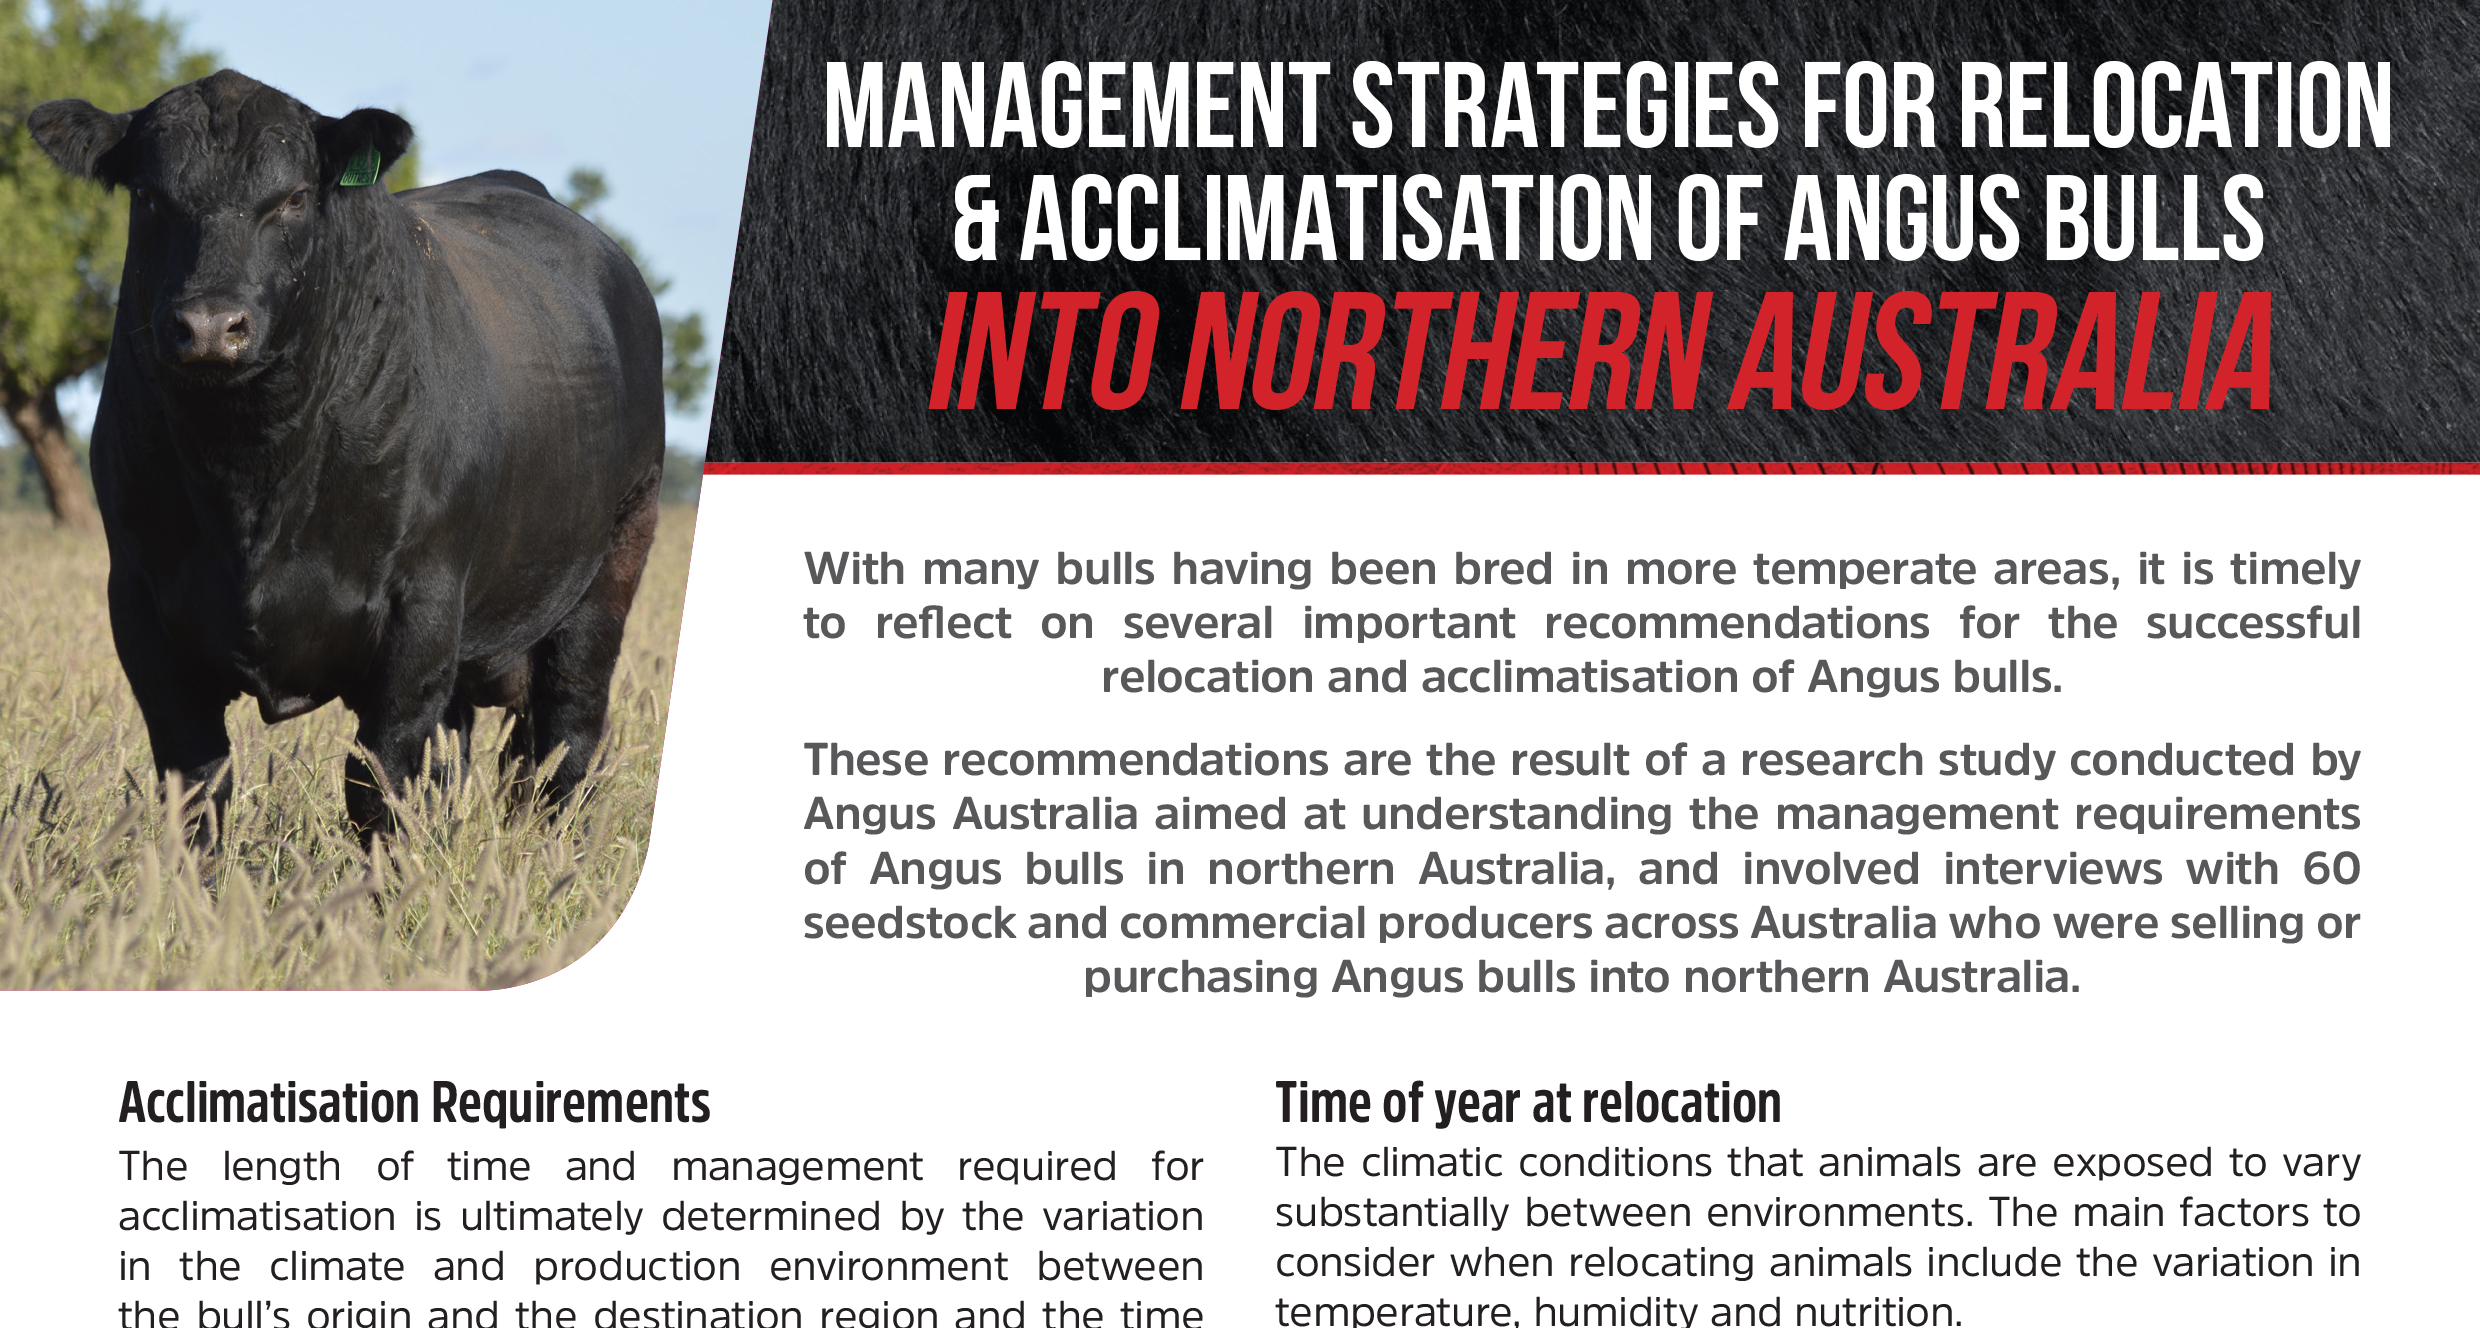 Management Strategies for Relocation & Acclimatisation of Angus Bulls